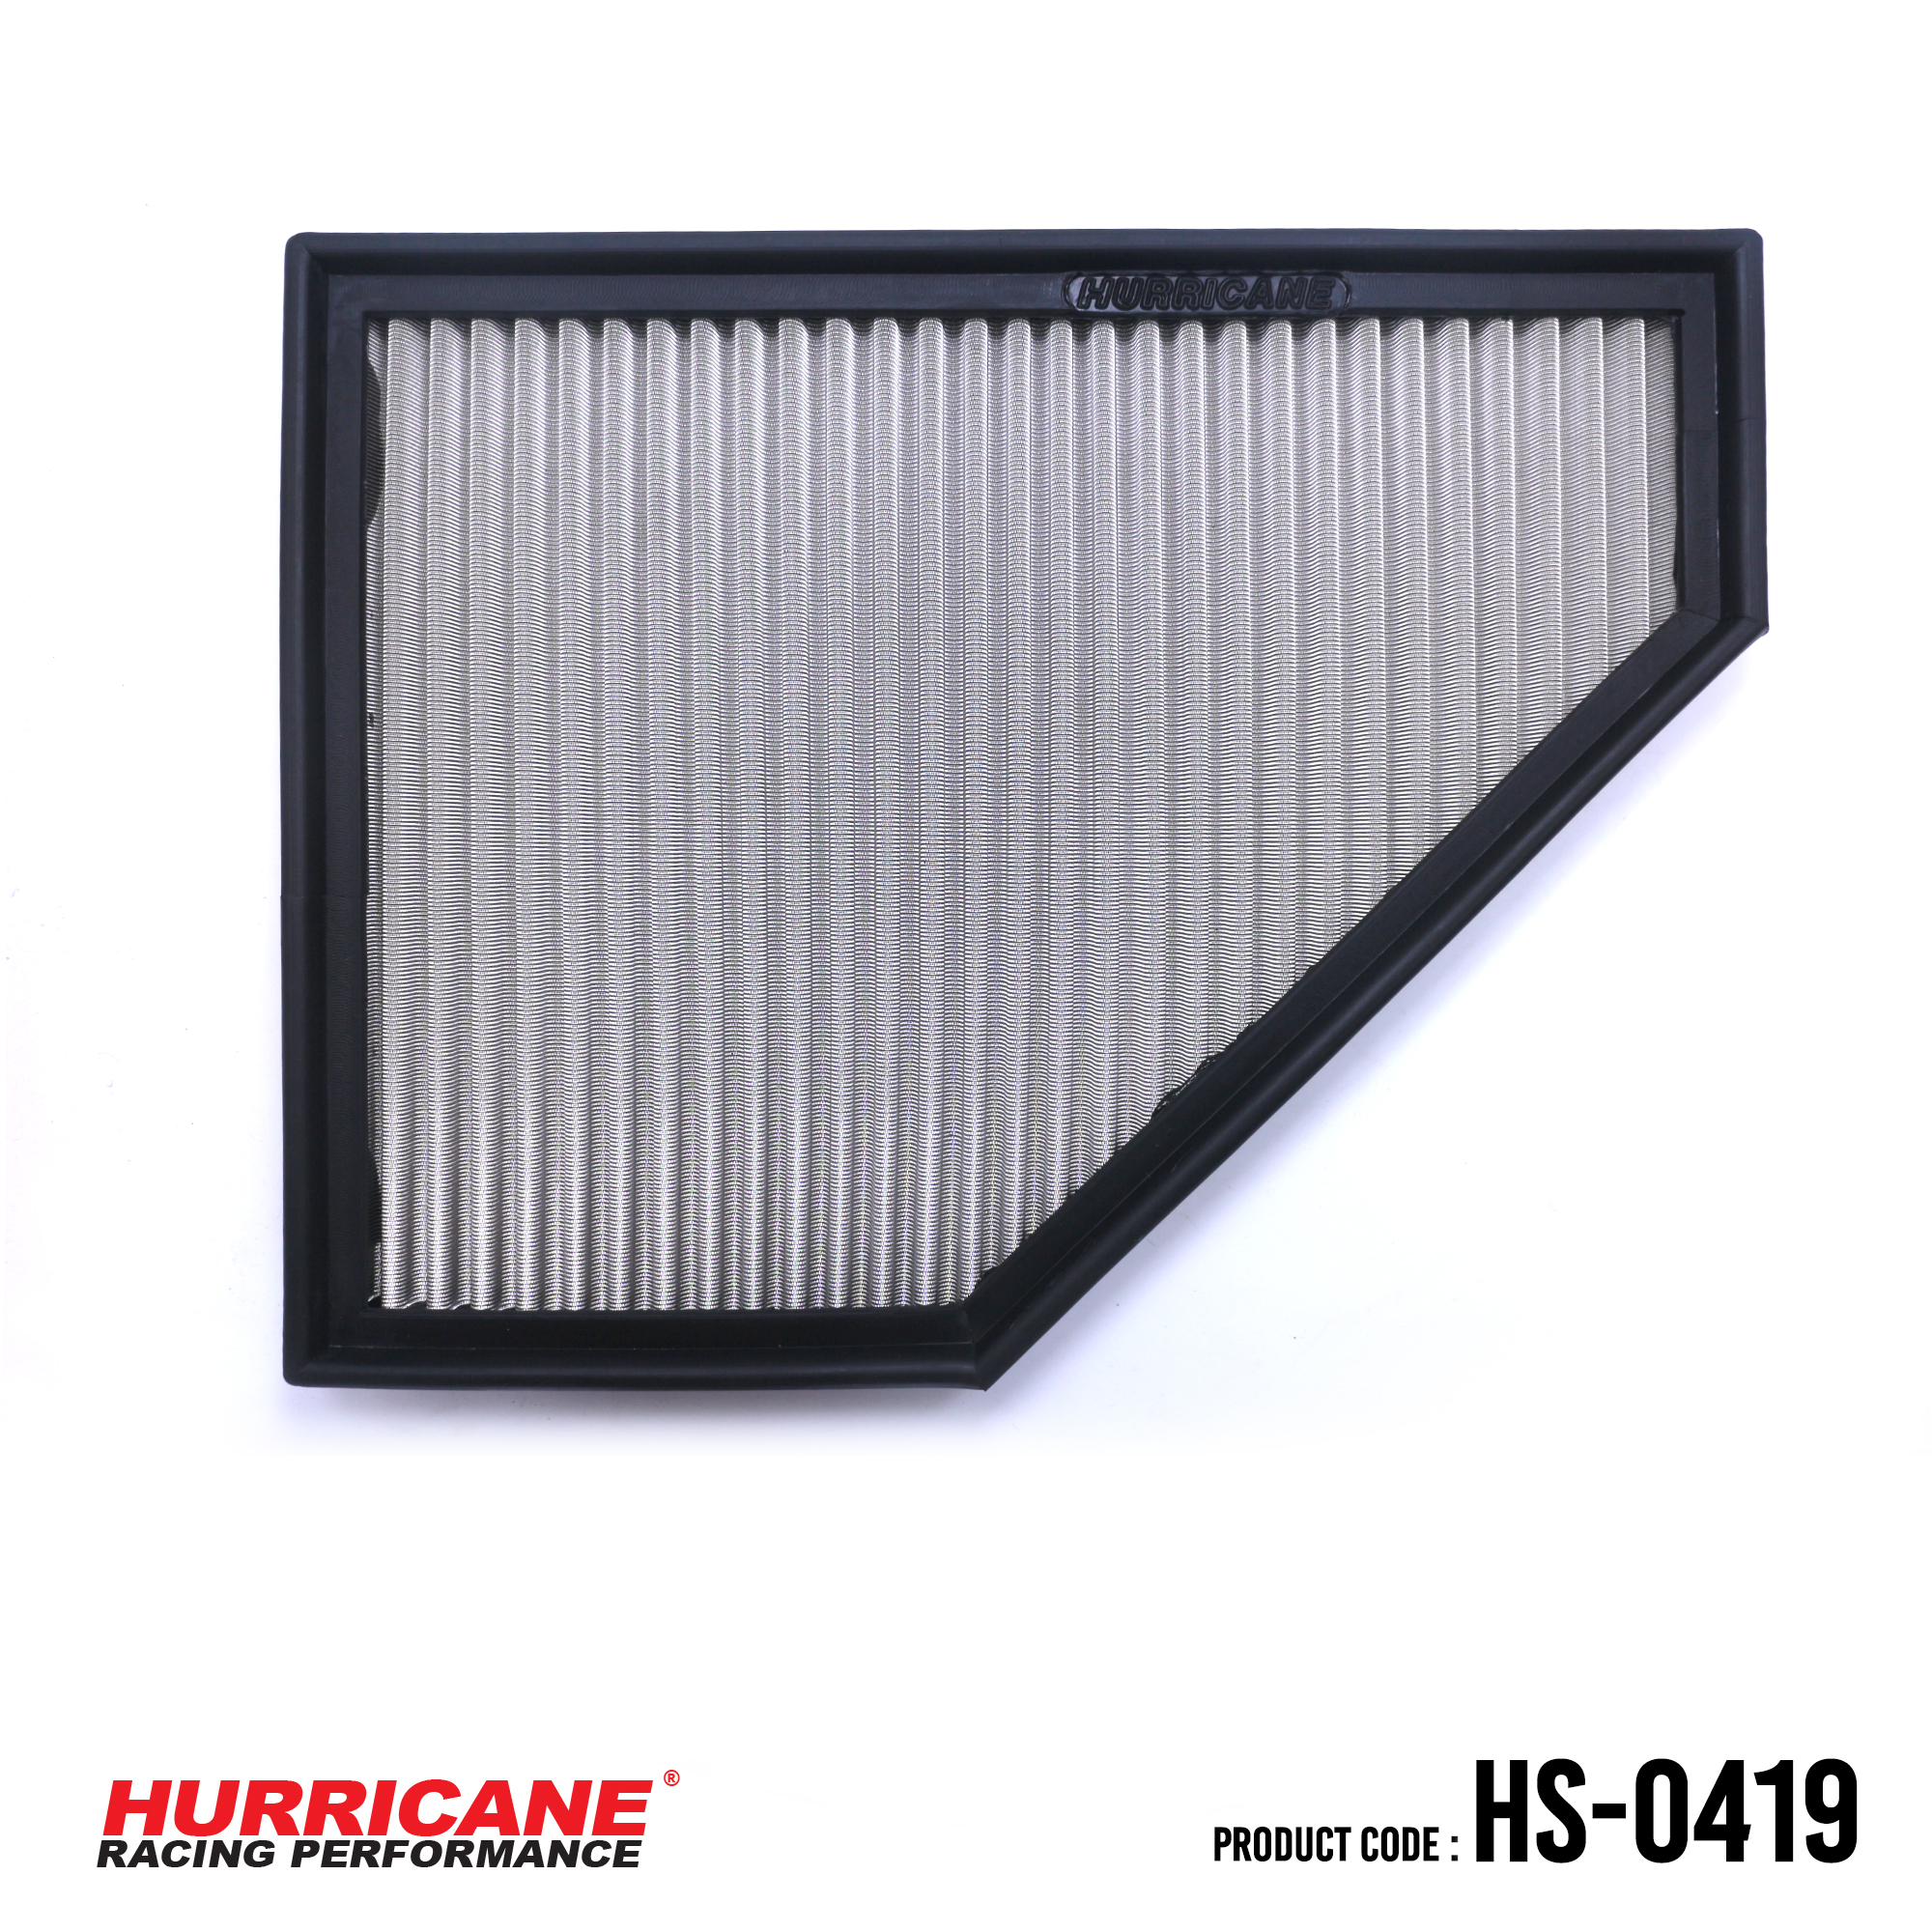 HURRICANE STAINLESS STEEL AIR FILTER FOR HS-0419 BMW